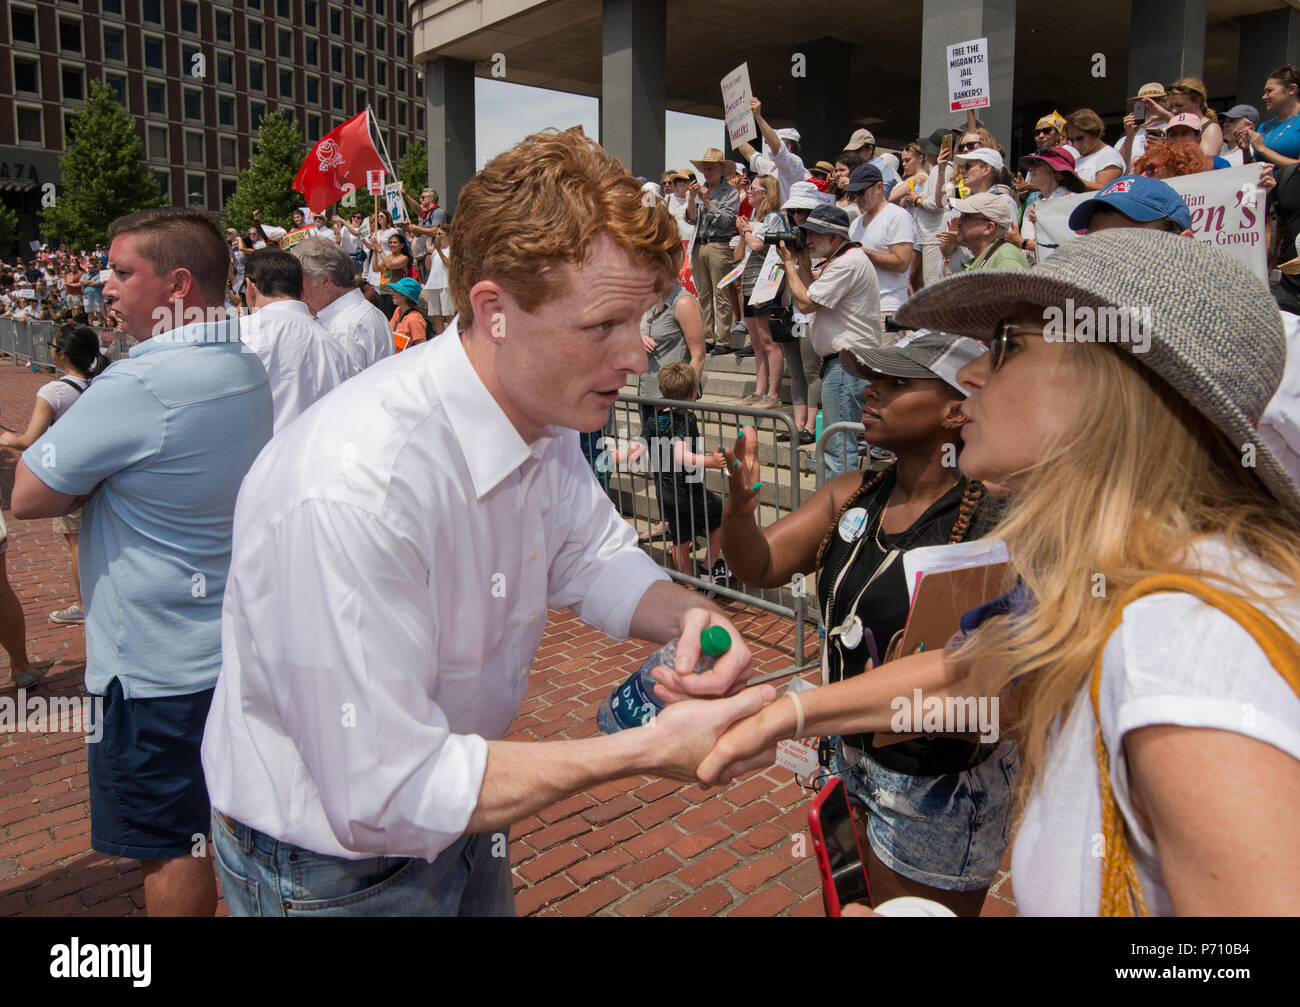 U.S. Democratic Representative Joseph Patrick Kennedy III (Joe Kennedy), grandson of Robert Kennedy and grand-nephew of John F. Kennedy Shaking hands at Boston City Hall during the Rally against Family Separation in Boston, MA. Kennedy had spoken against U.S. President Donald Trump's policy of detaining immigrants and separating immigrant families.  Large rallies against President Trump's policy of separating immigrant families took place in more than 750 U.S. cities on June 30th of 2018. Stock Photo